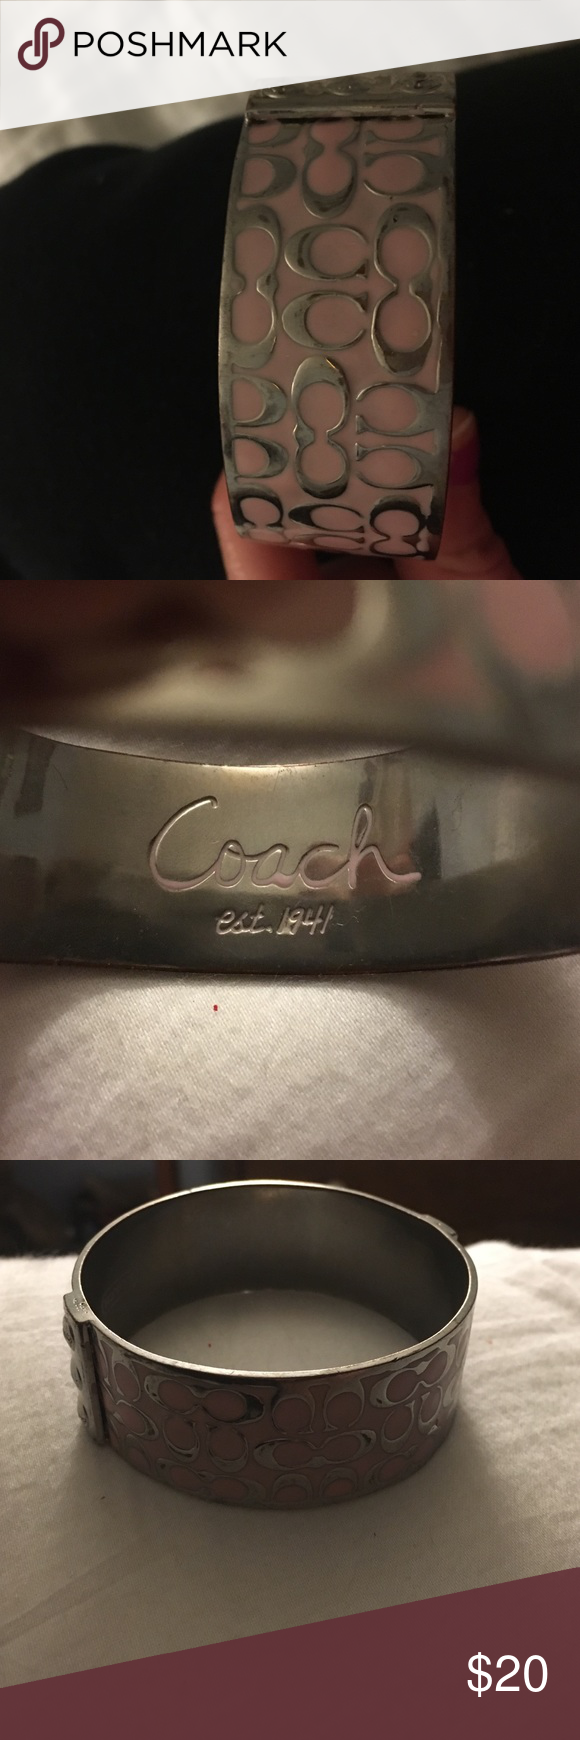 Coach bangle bracelet Baby pink and silver coach bangle bracelet very cute but worn just a little too big for my wrist Coach Jewelry Bracelets